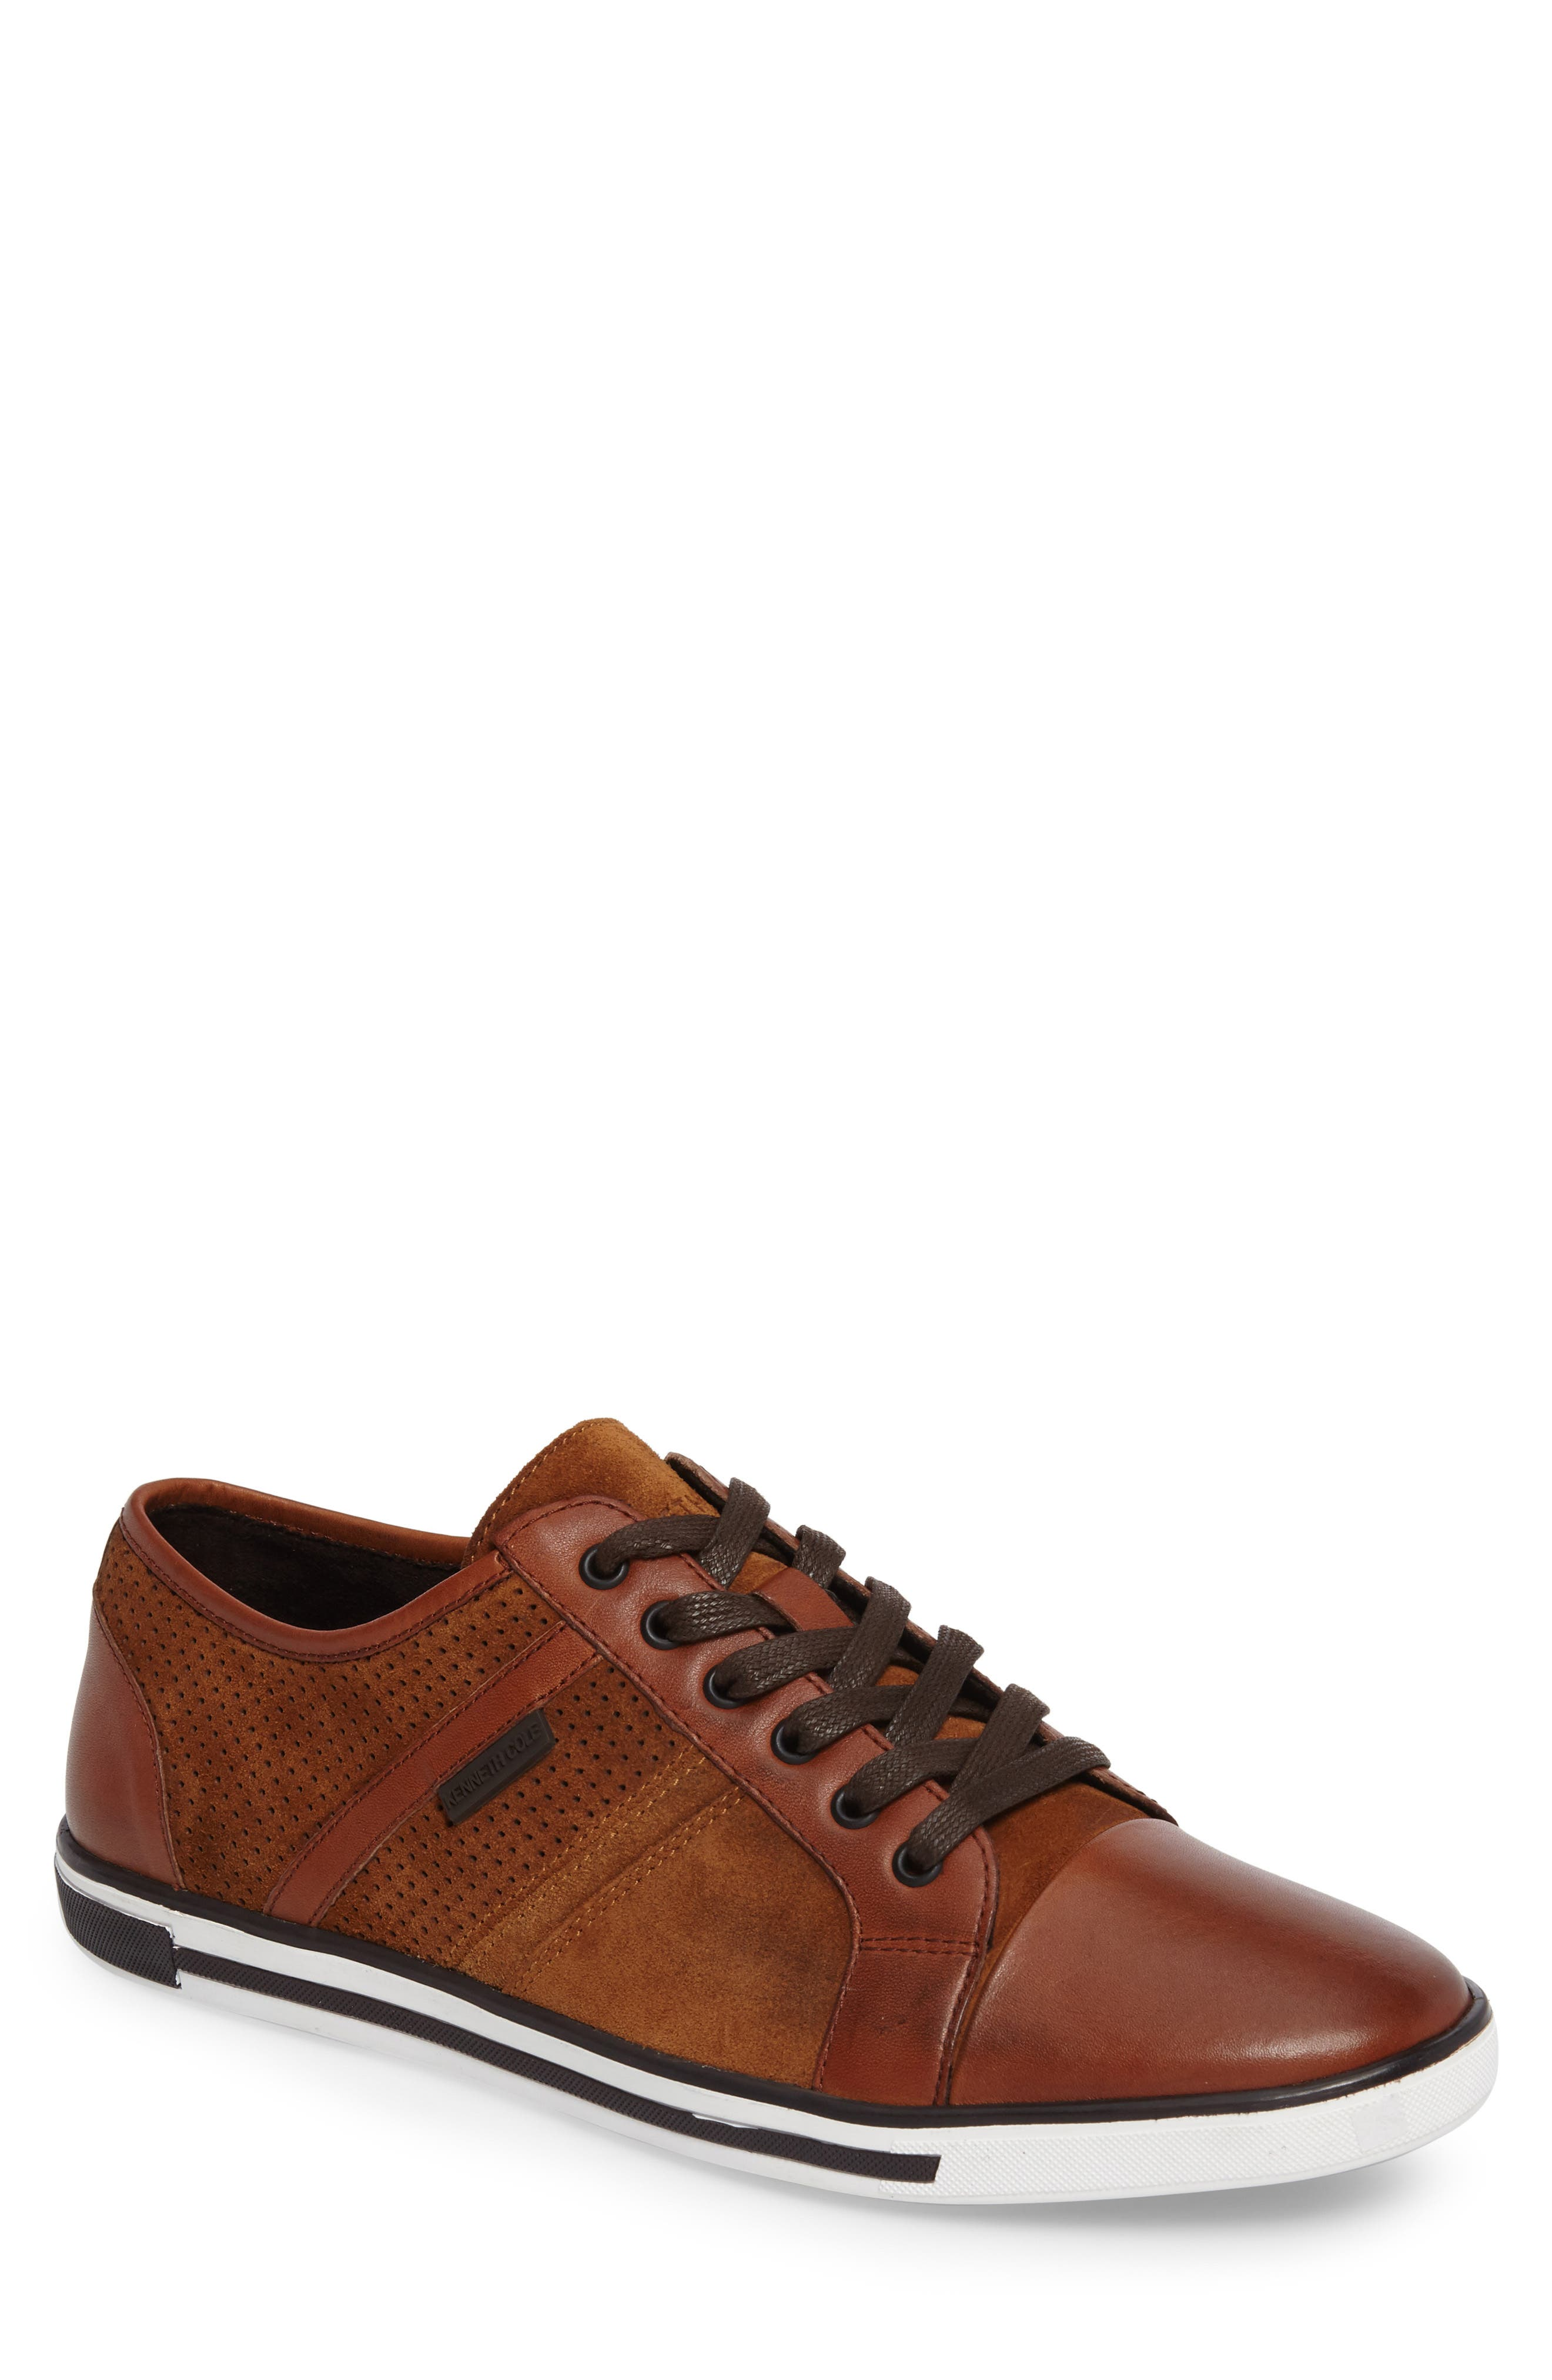 Alternate Image 1 Selected - Kenneth Cole New York Initial Step Sneaker (Men)